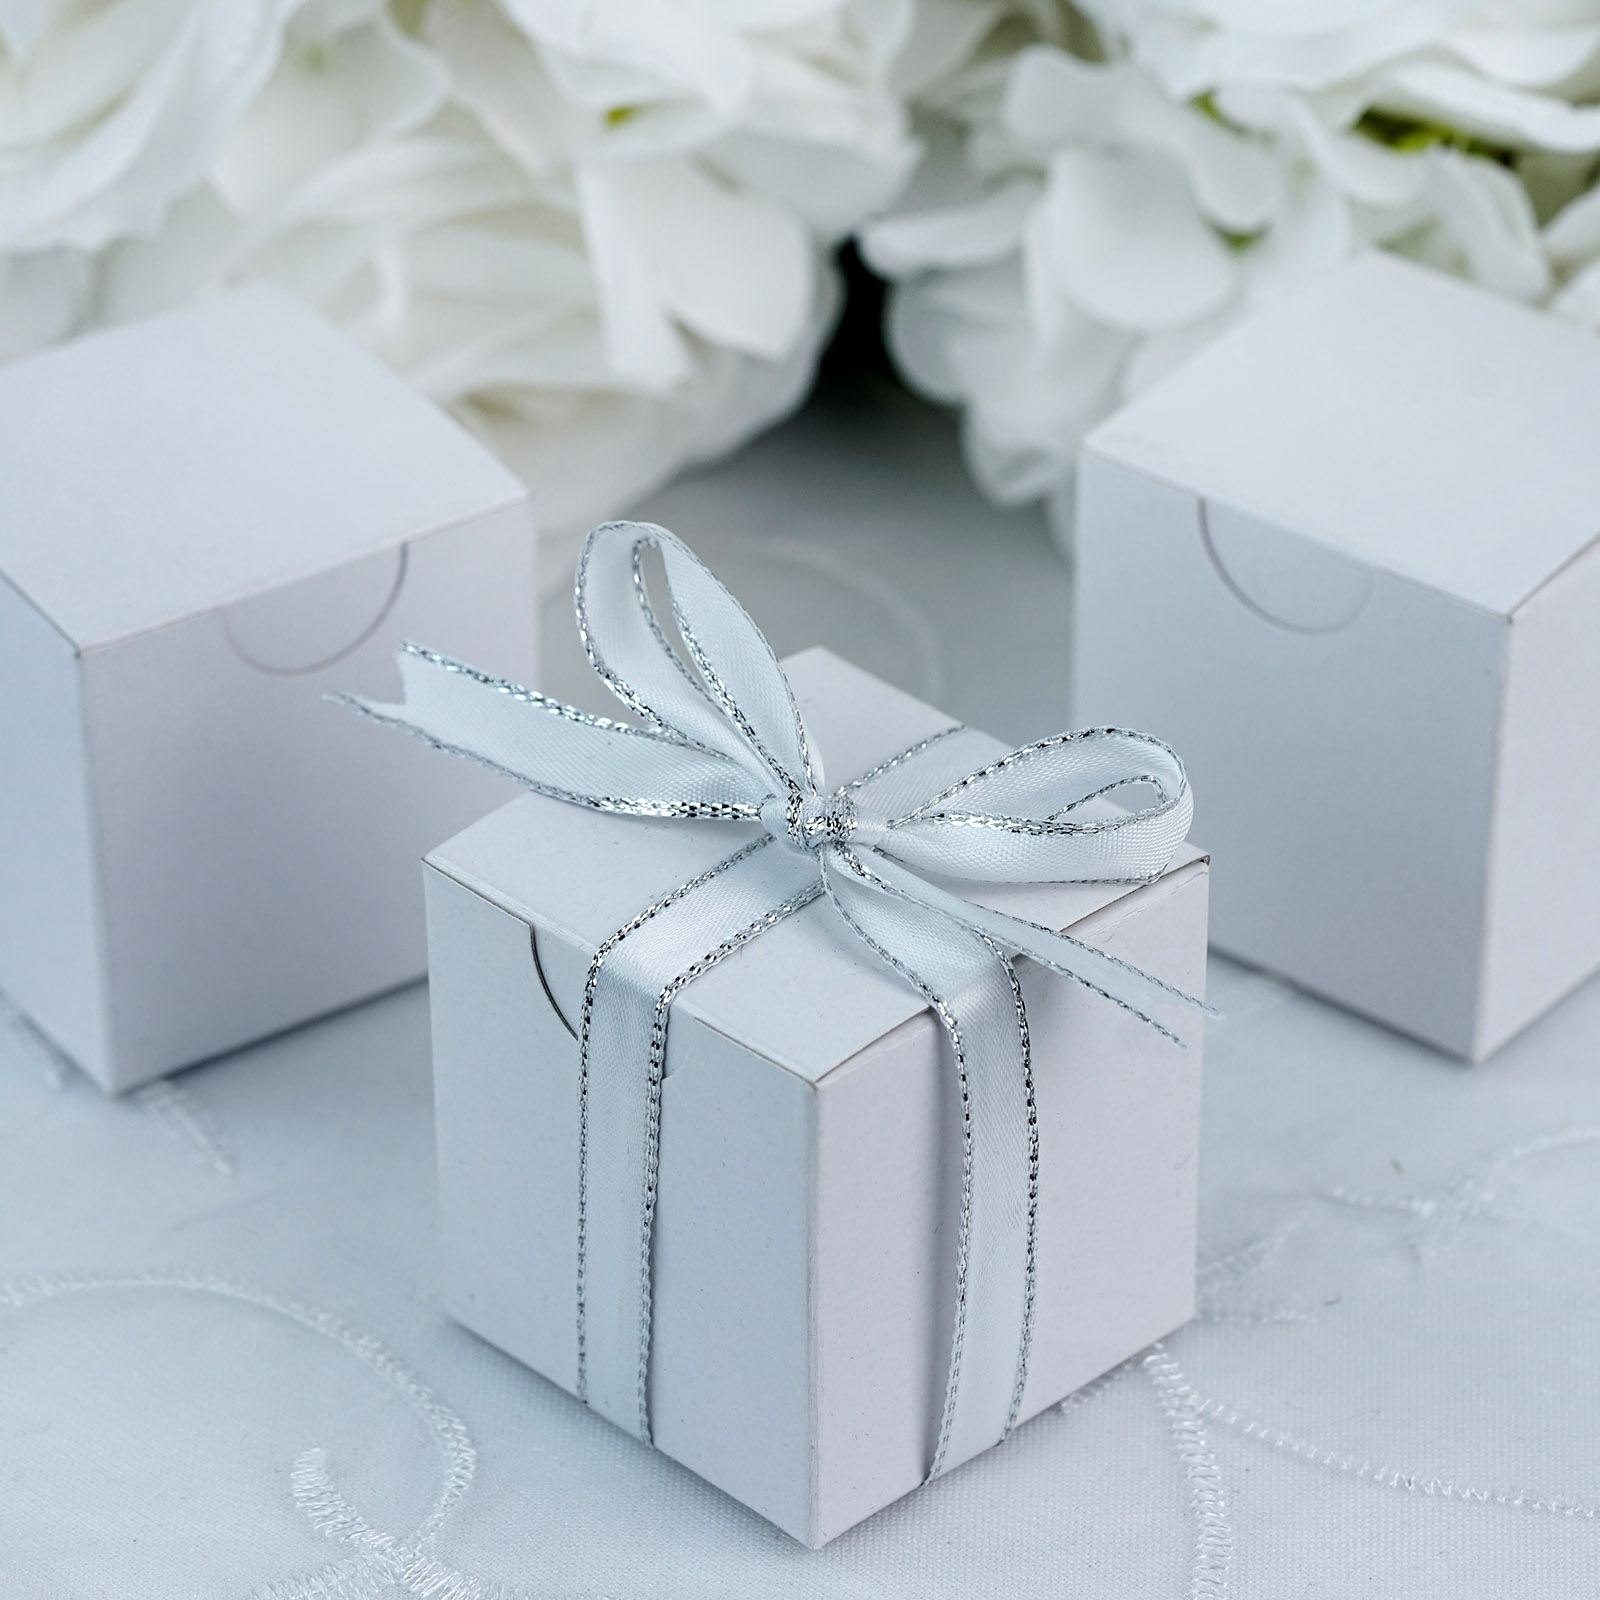 100 2x2x2 Wedding Favors Boxes Gift Packages Party Supplies